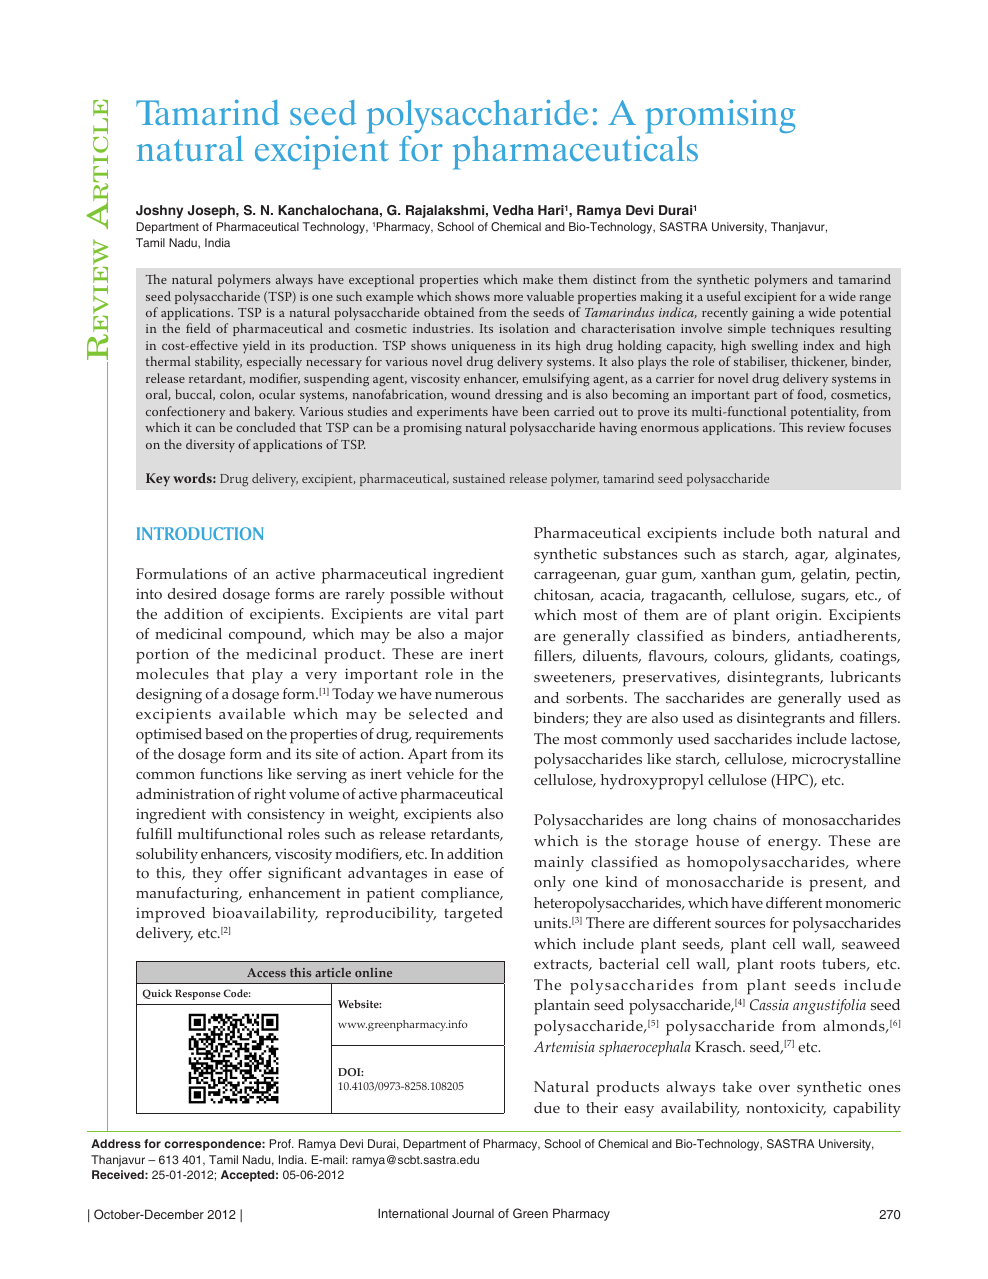 Tamarind seed polysaccharide: A promising natural excipient for